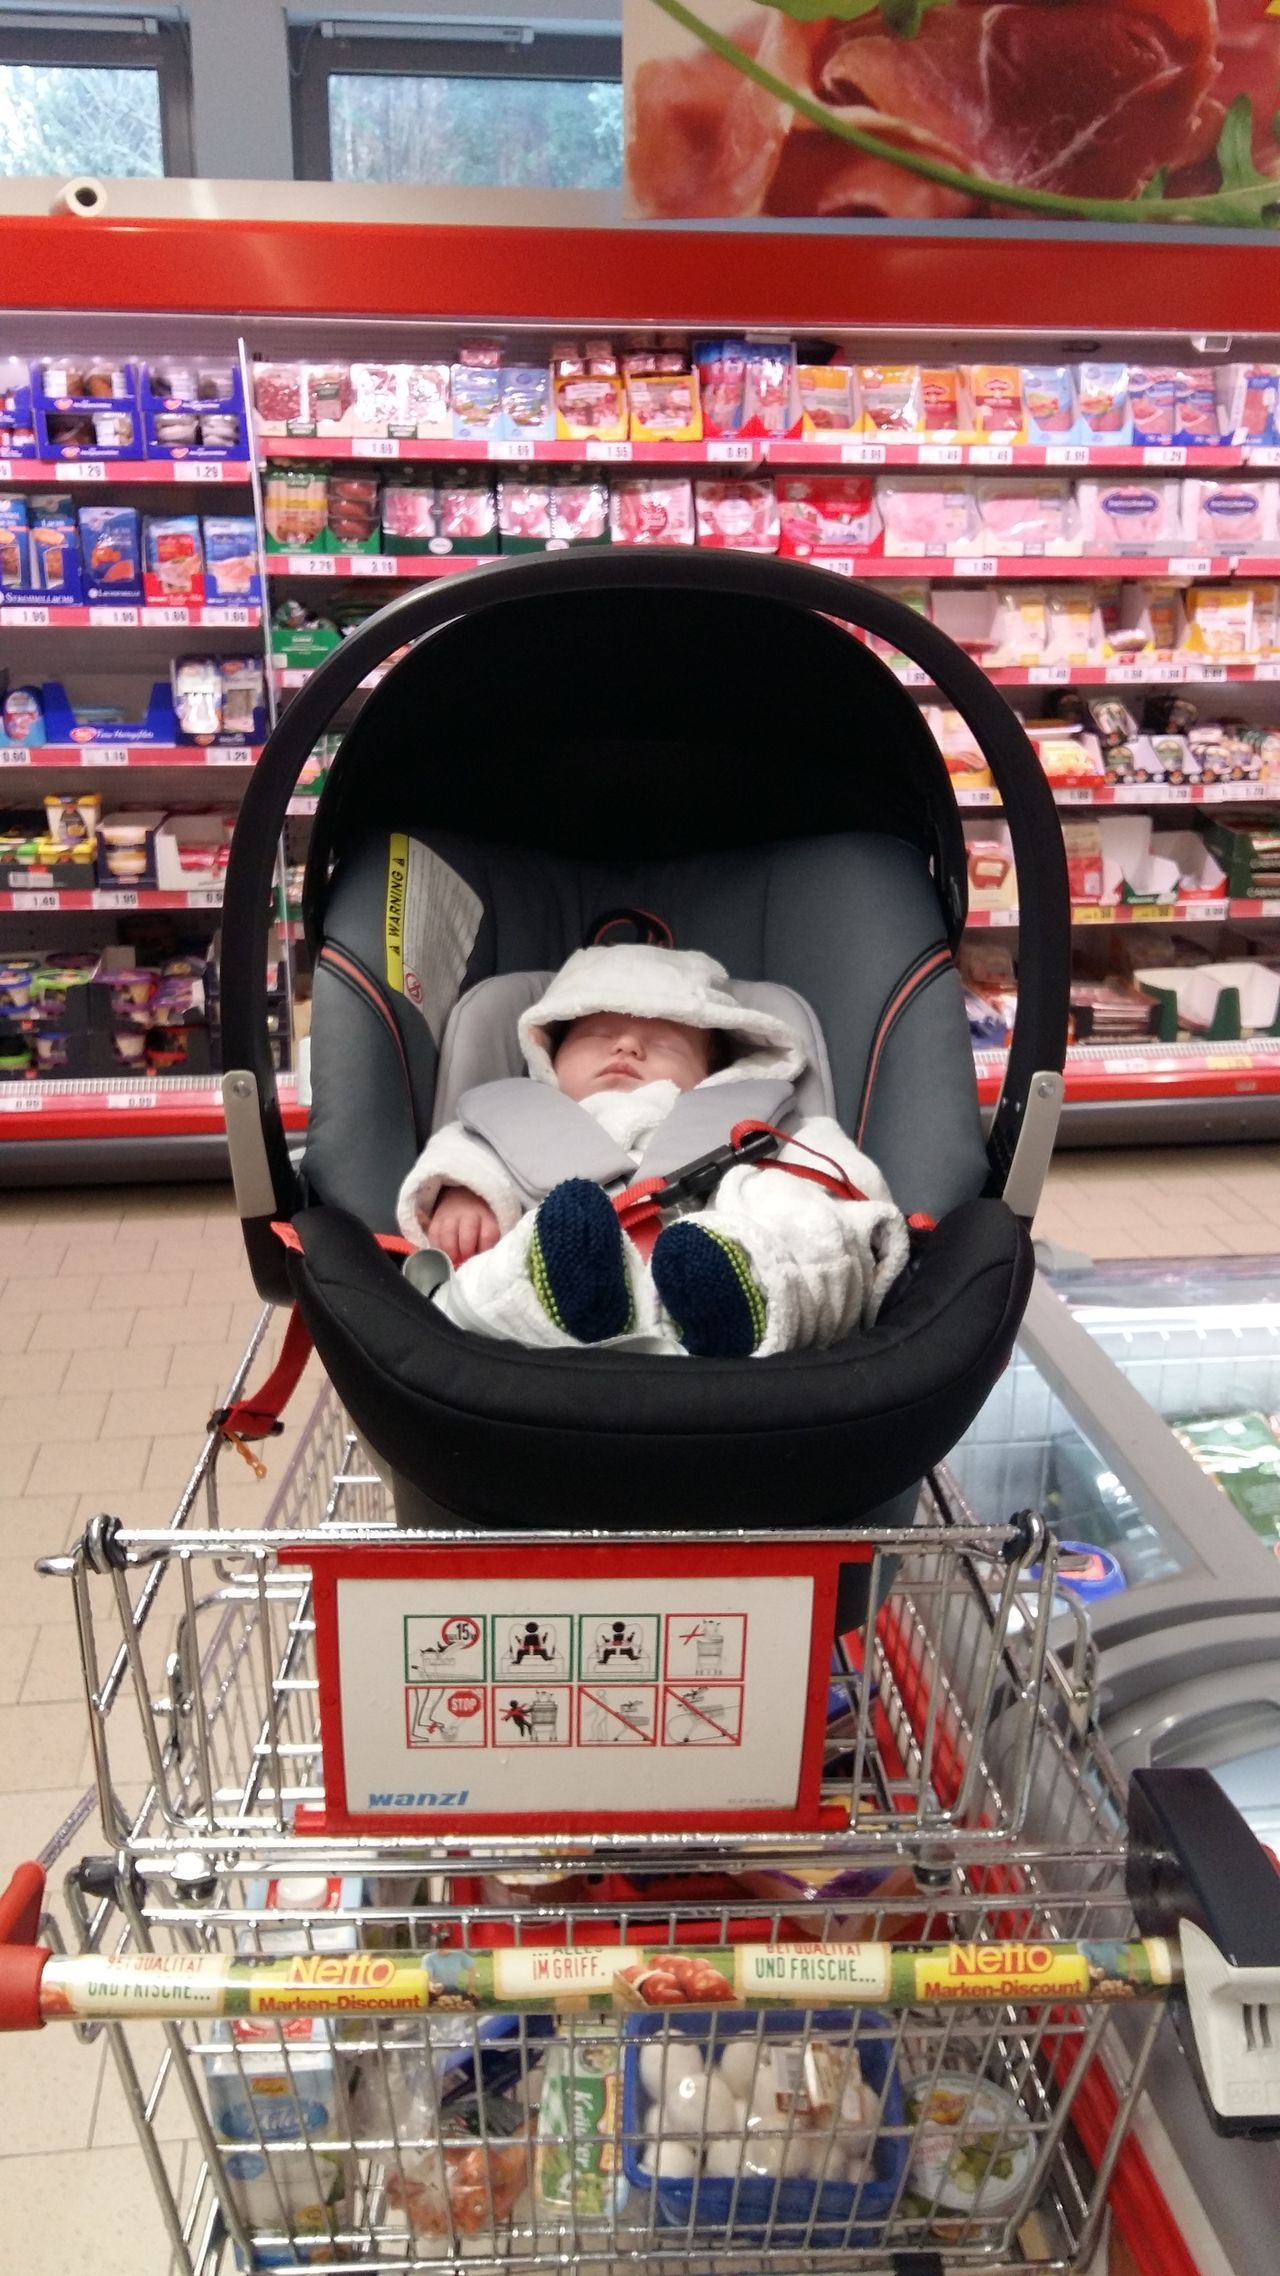 Going Shopping with your Baby Baby Childhood Close-up Day Discounter Einkaufen Mit Baby Einkaufswagen Front View German Supermarket Human Body Part Human Hand Indoors  Life With Baby Netto Discounter One Person People Retail  Shopping Shopping Cart Shopping Time Store Supermarket Take Your Baby Along